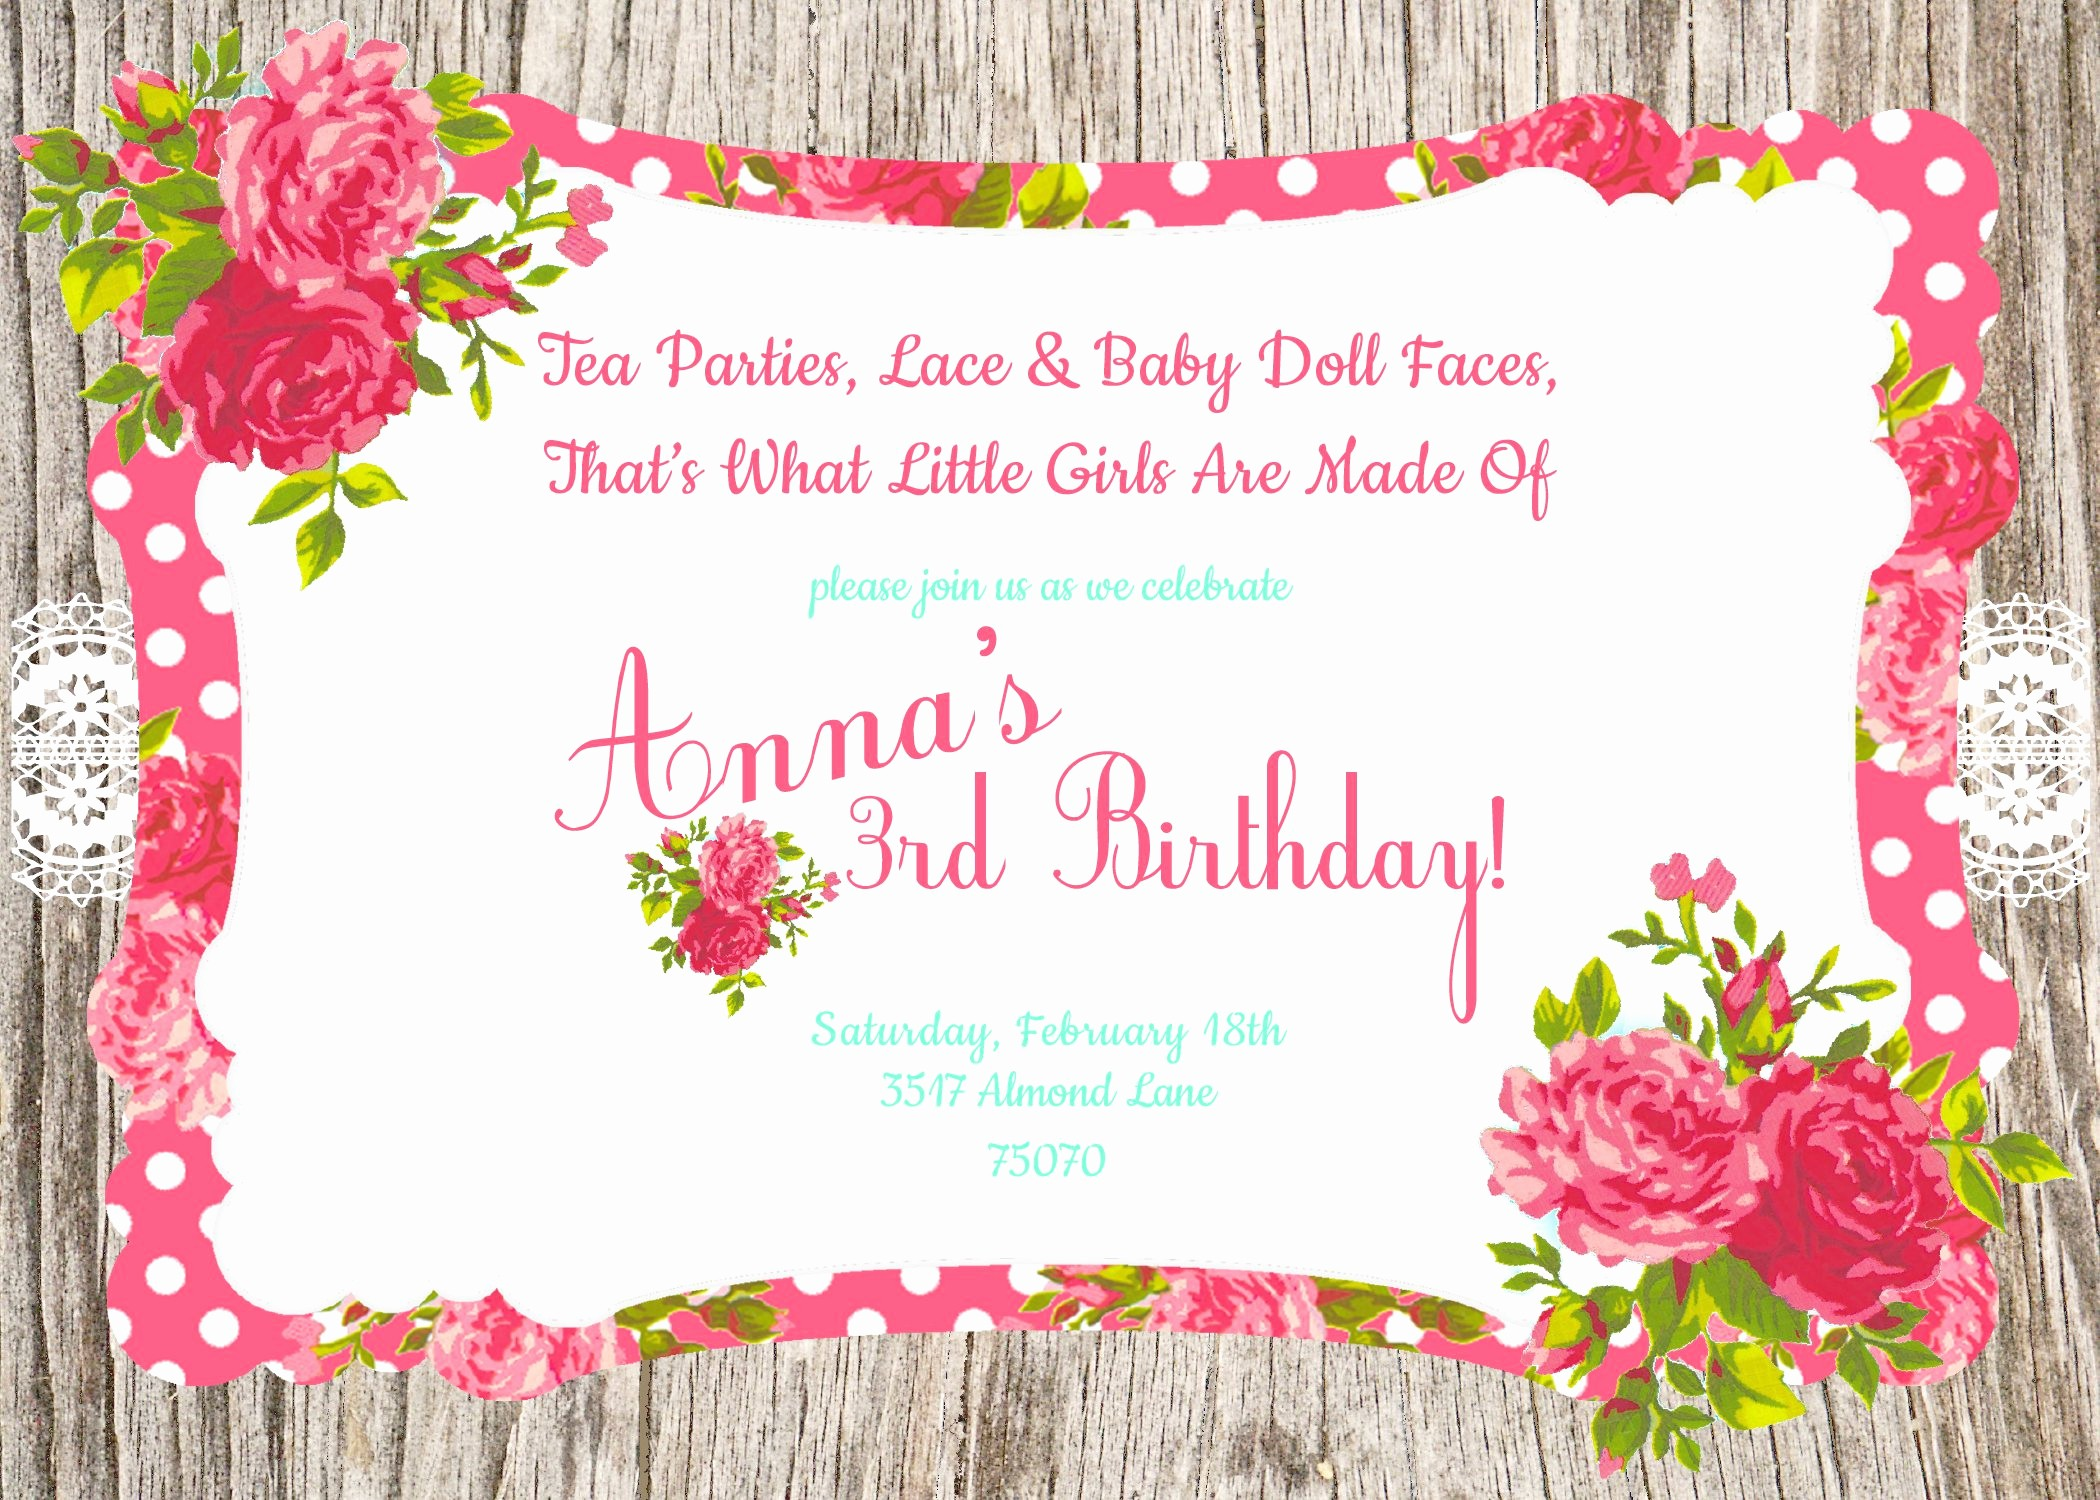 Birthday Invitation Card Template Free Awesome Invitation Birthday Card Invitation Birthday Card